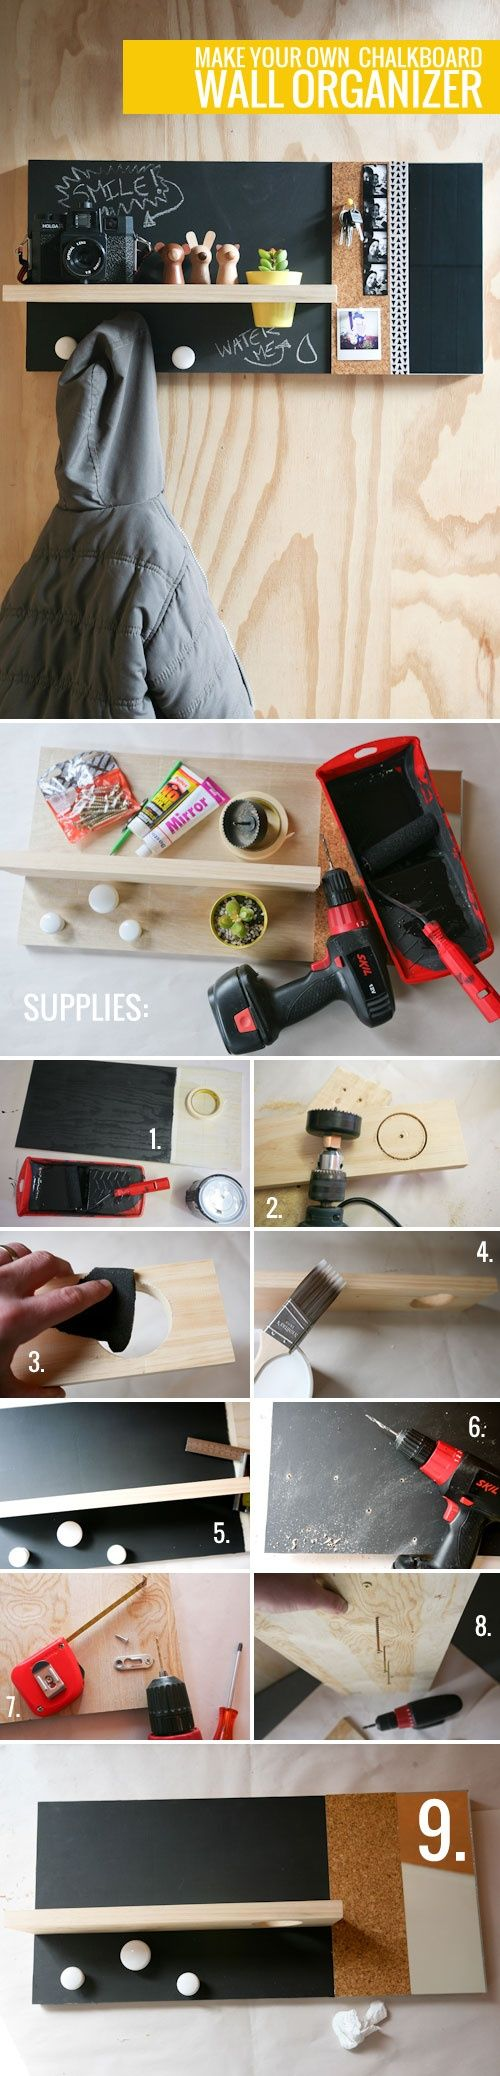 DIY Chalkboard Wall Organizer DIY Chalkboard Wall Organizer - Instead of a plant in the pot, put a roll of glucose tablets so you are never without an emergency source of glucose for those unexpected lows. You could also keep a few granola bars handy on this shelf too.